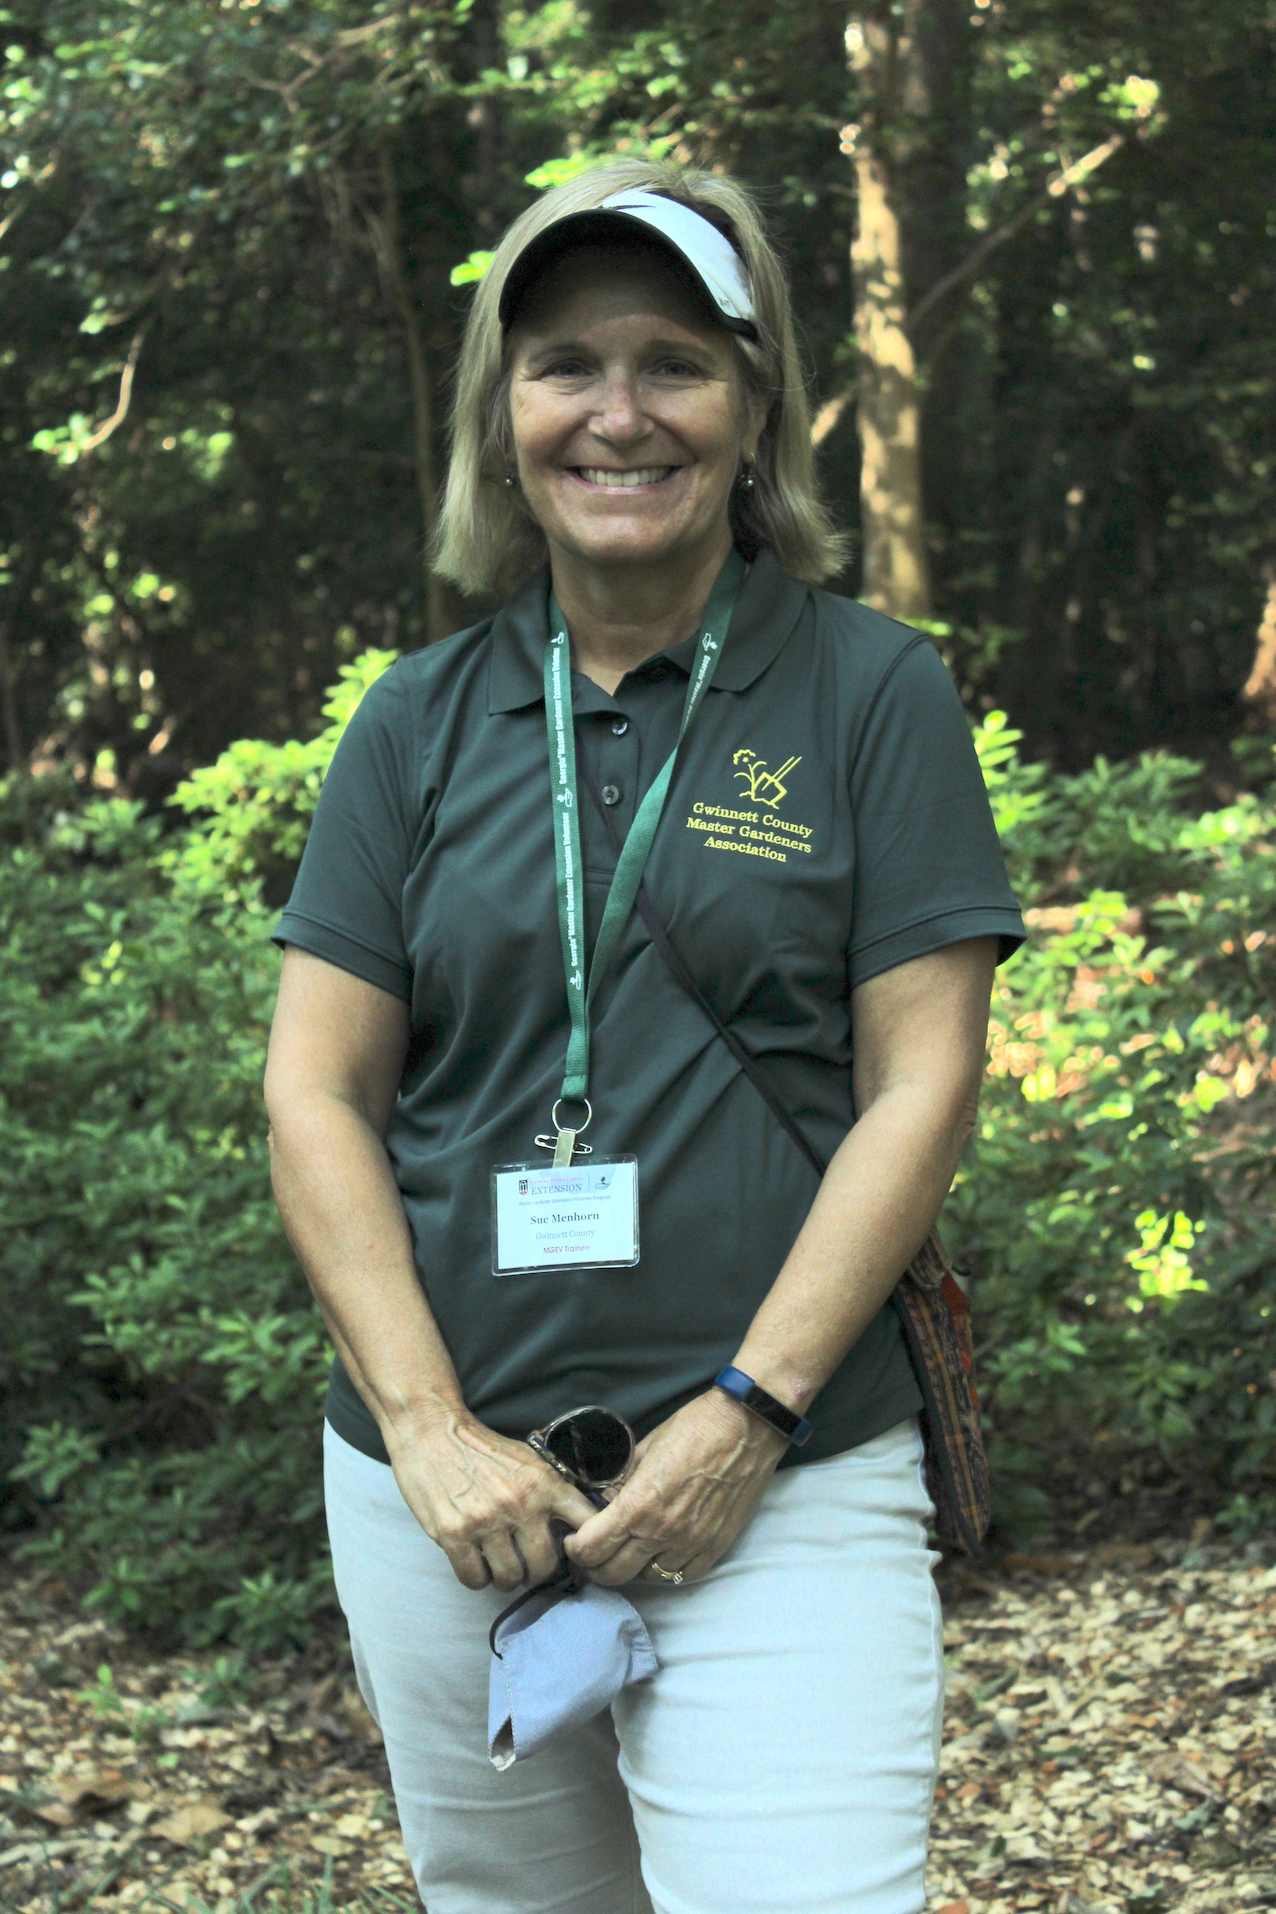 Another new master gardener warmly offers docent duties with a smile